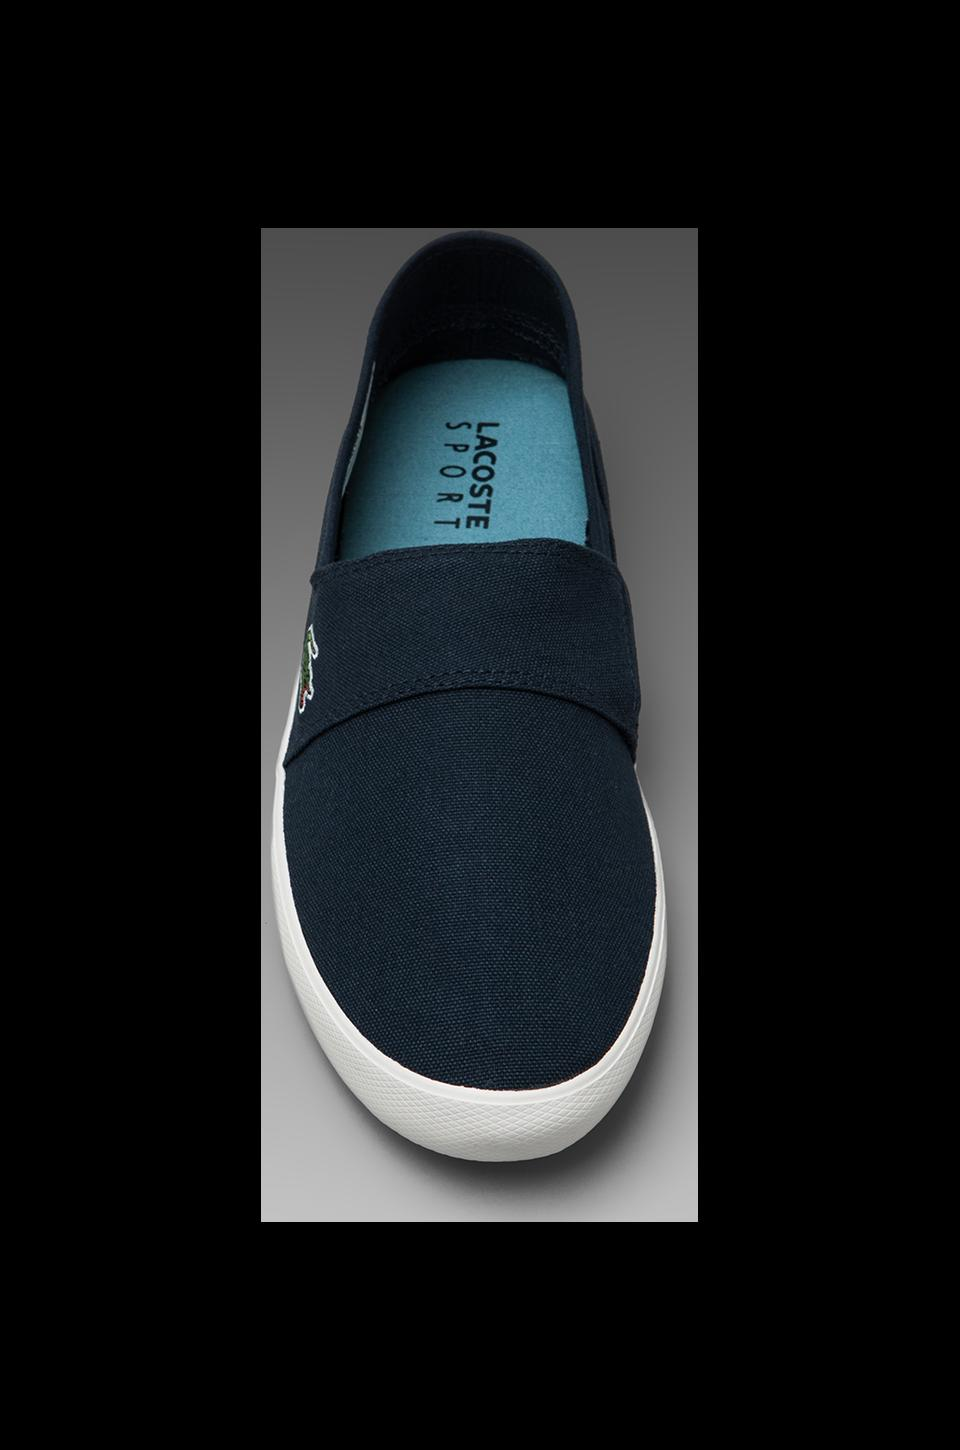 Lacoste Clemente in Dark Blue/Turquoise